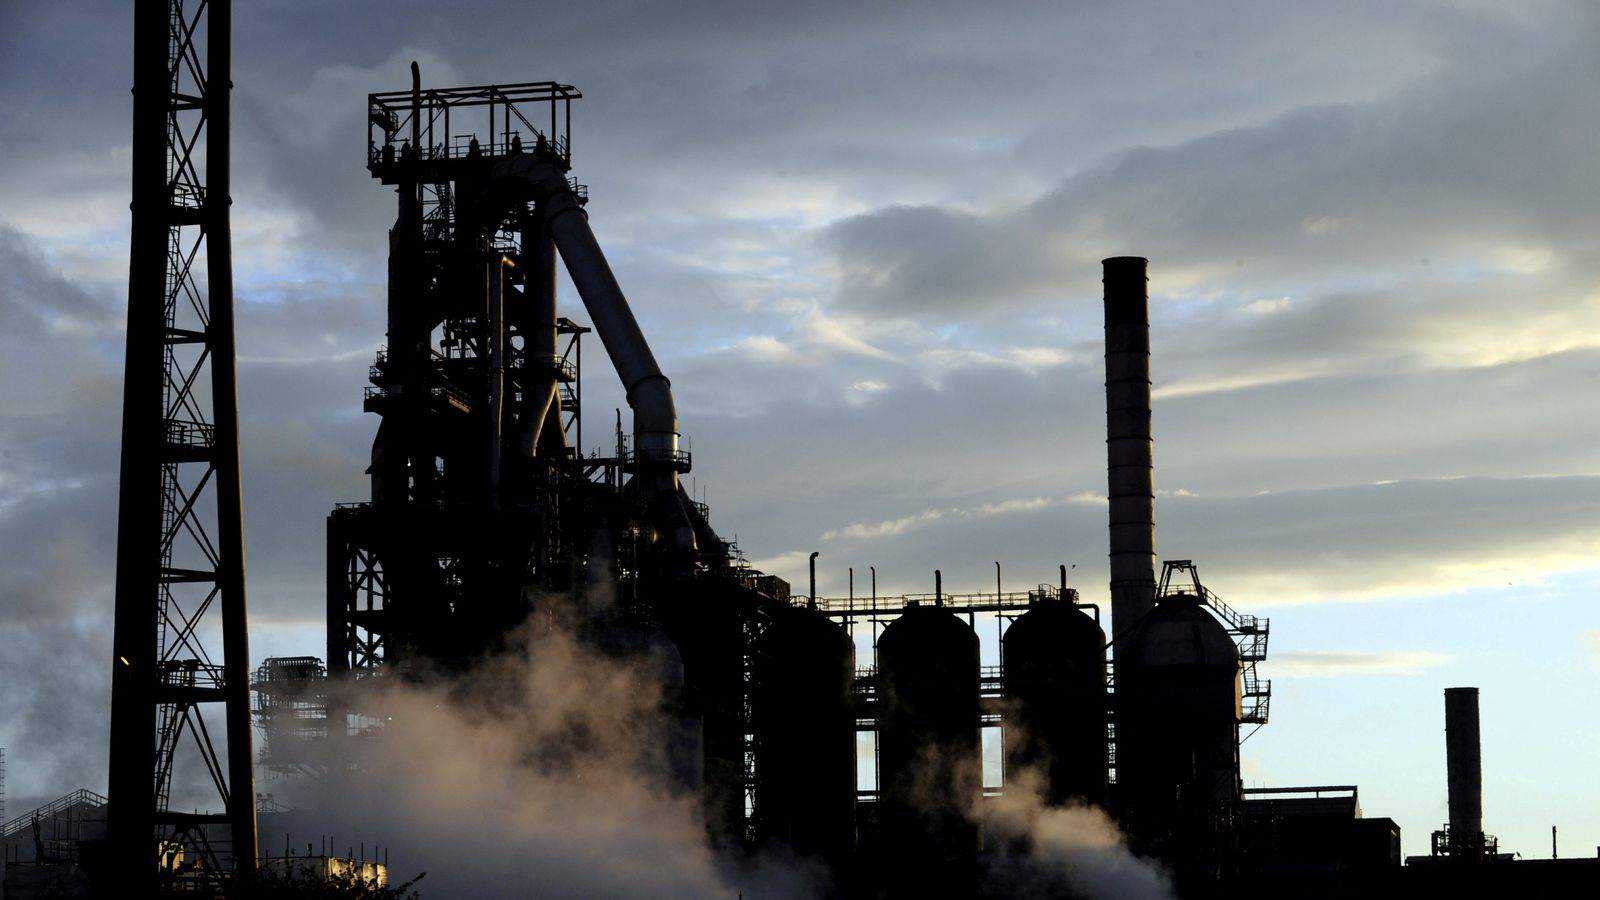 India's Tata Steel to slash 3,000 jobs in Europe - report